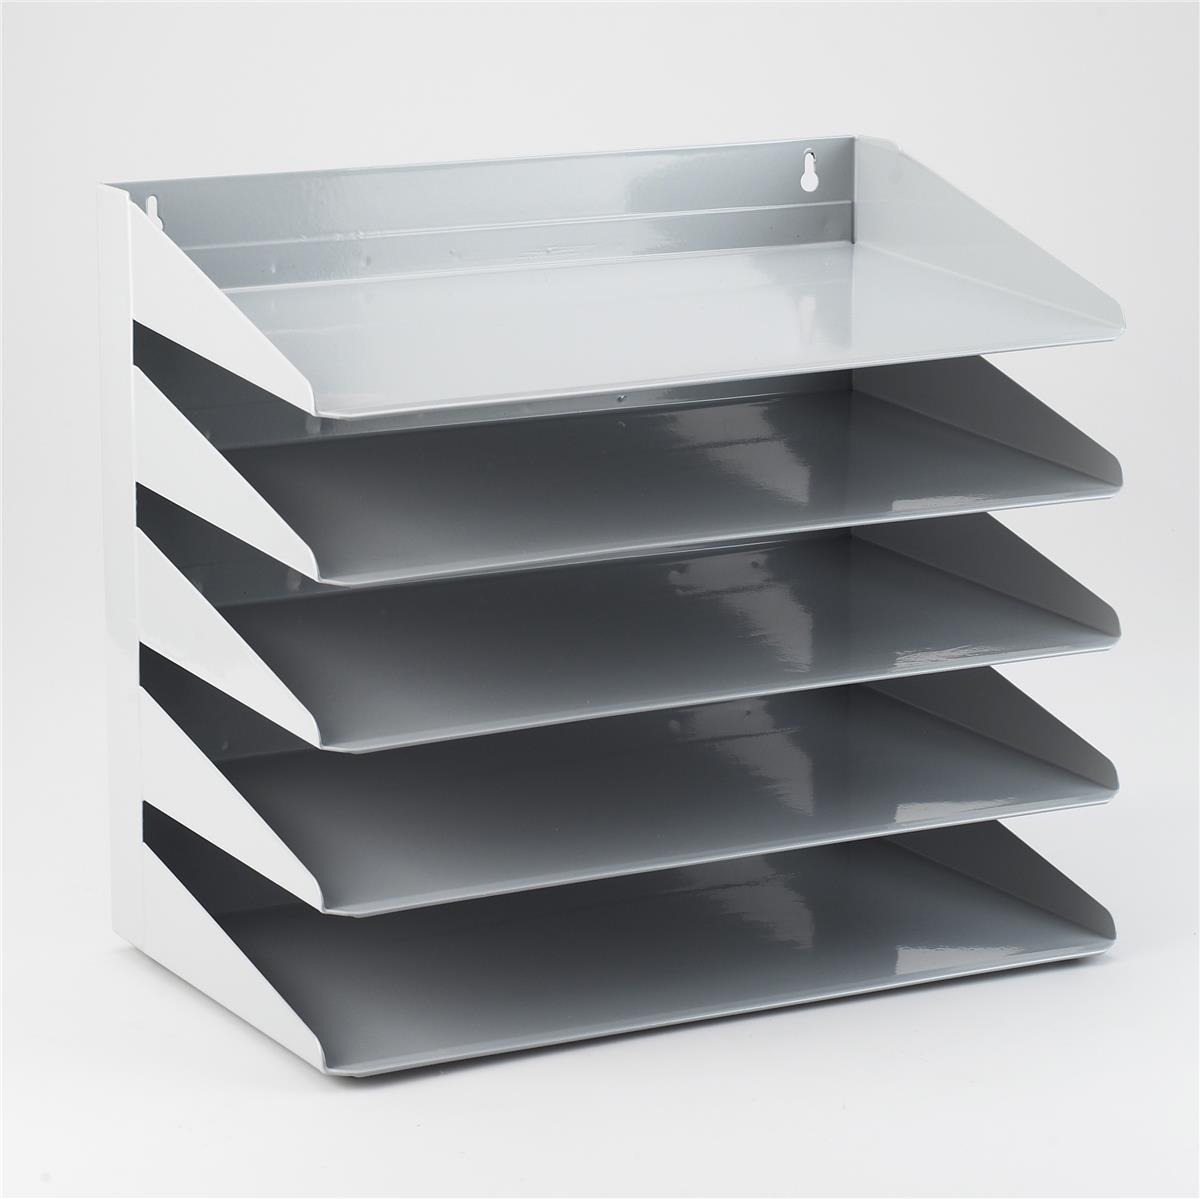 Image for Avery Letter Rack 5-Tier Steel W380xD230xH335mm Grey Ref 605SGREY